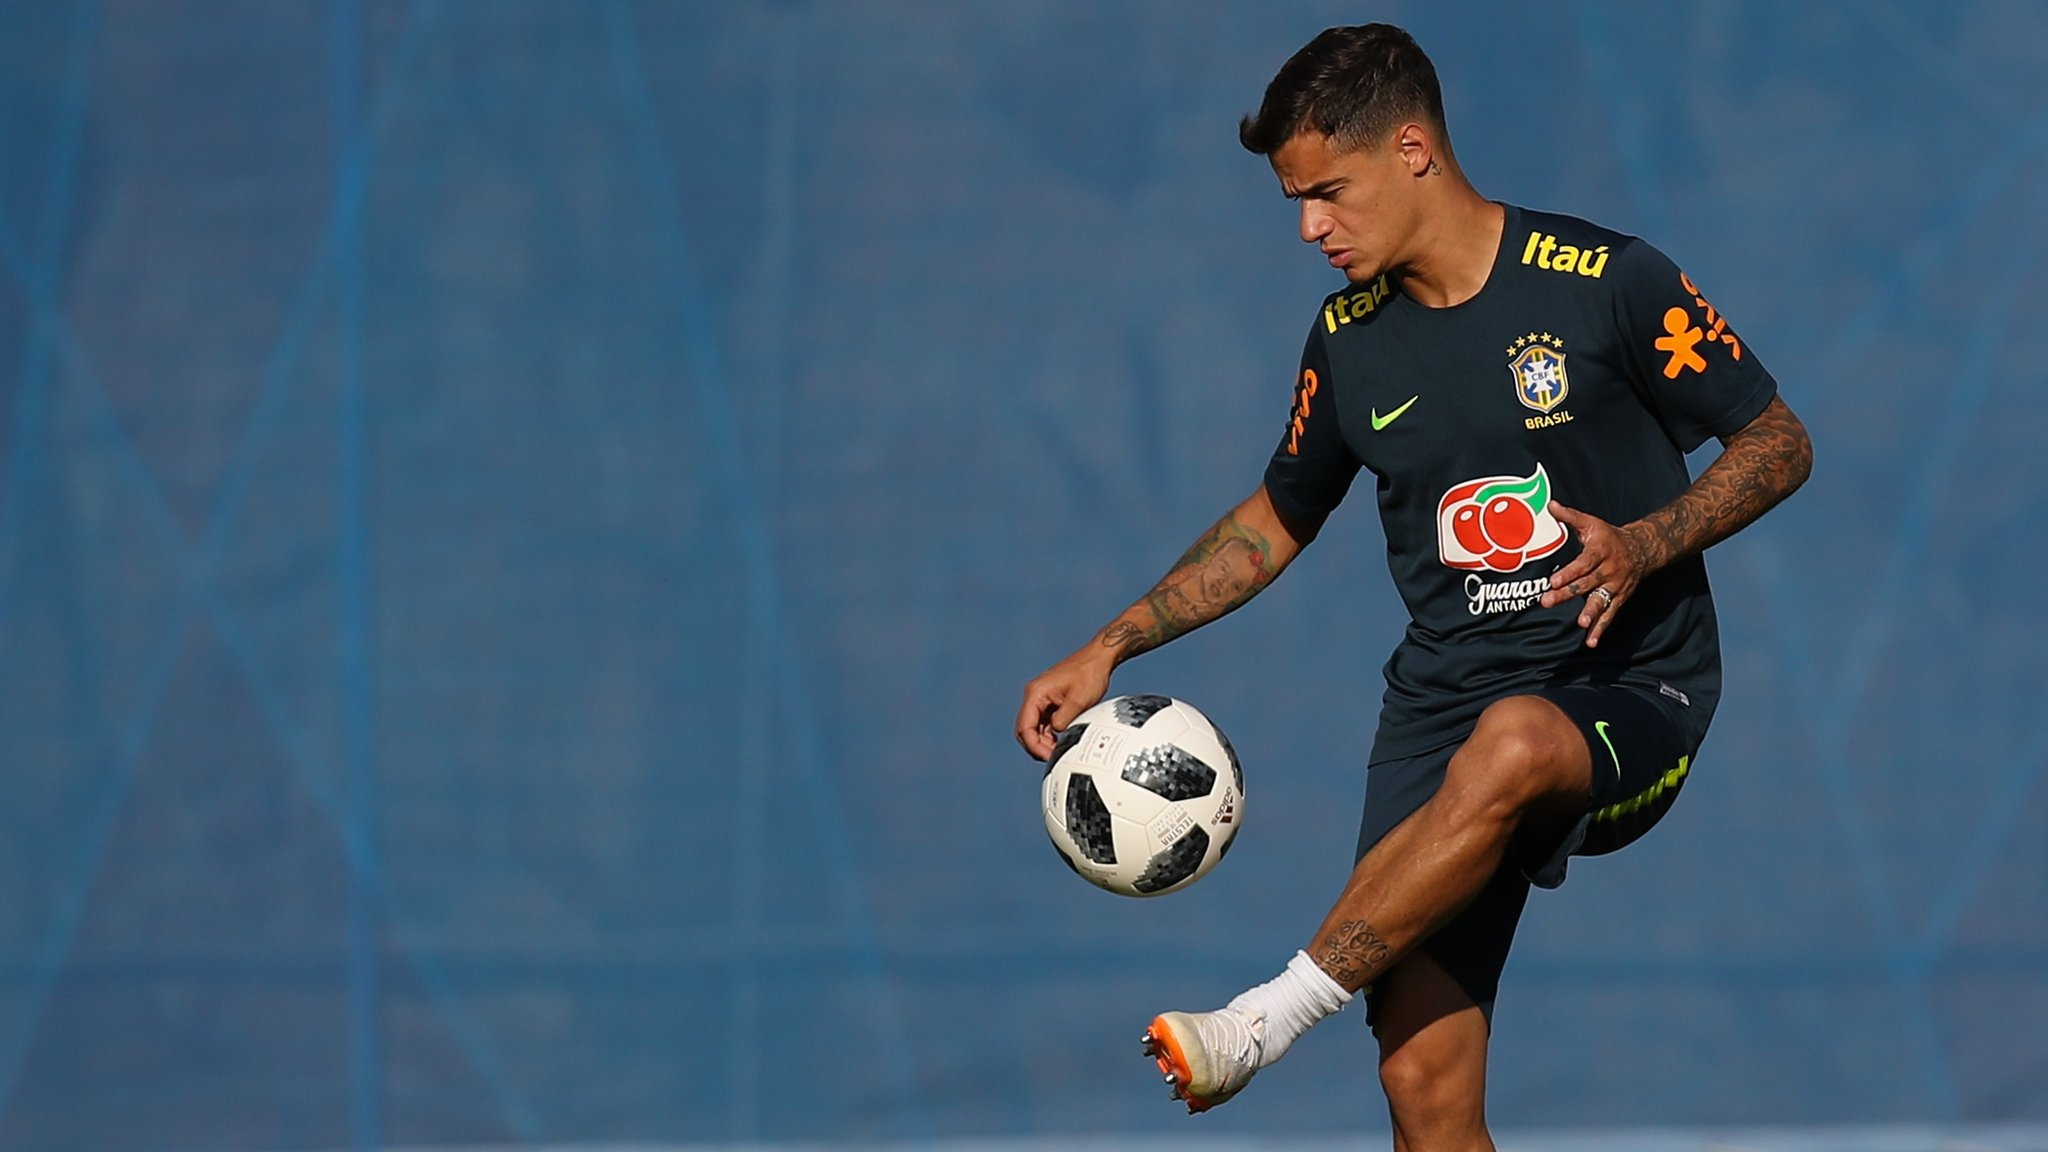 Brazil's Neymar fit for Costa Rica match